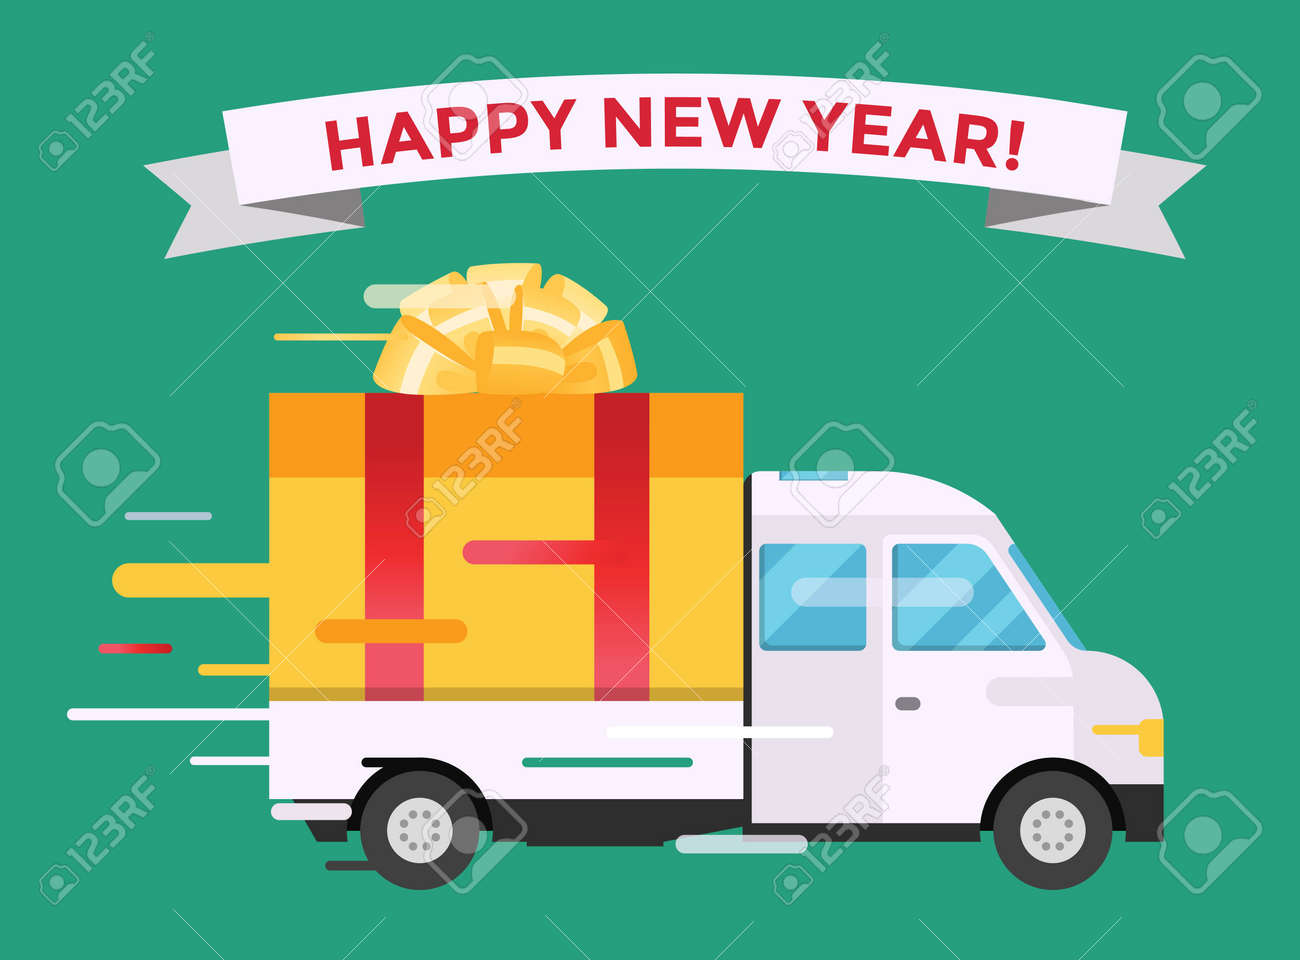 Delivery transport truck van christmas gift box bow ribbon delivery delivery transport truck van christmas gift box bow ribbon delivery service van new year greeting m4hsunfo